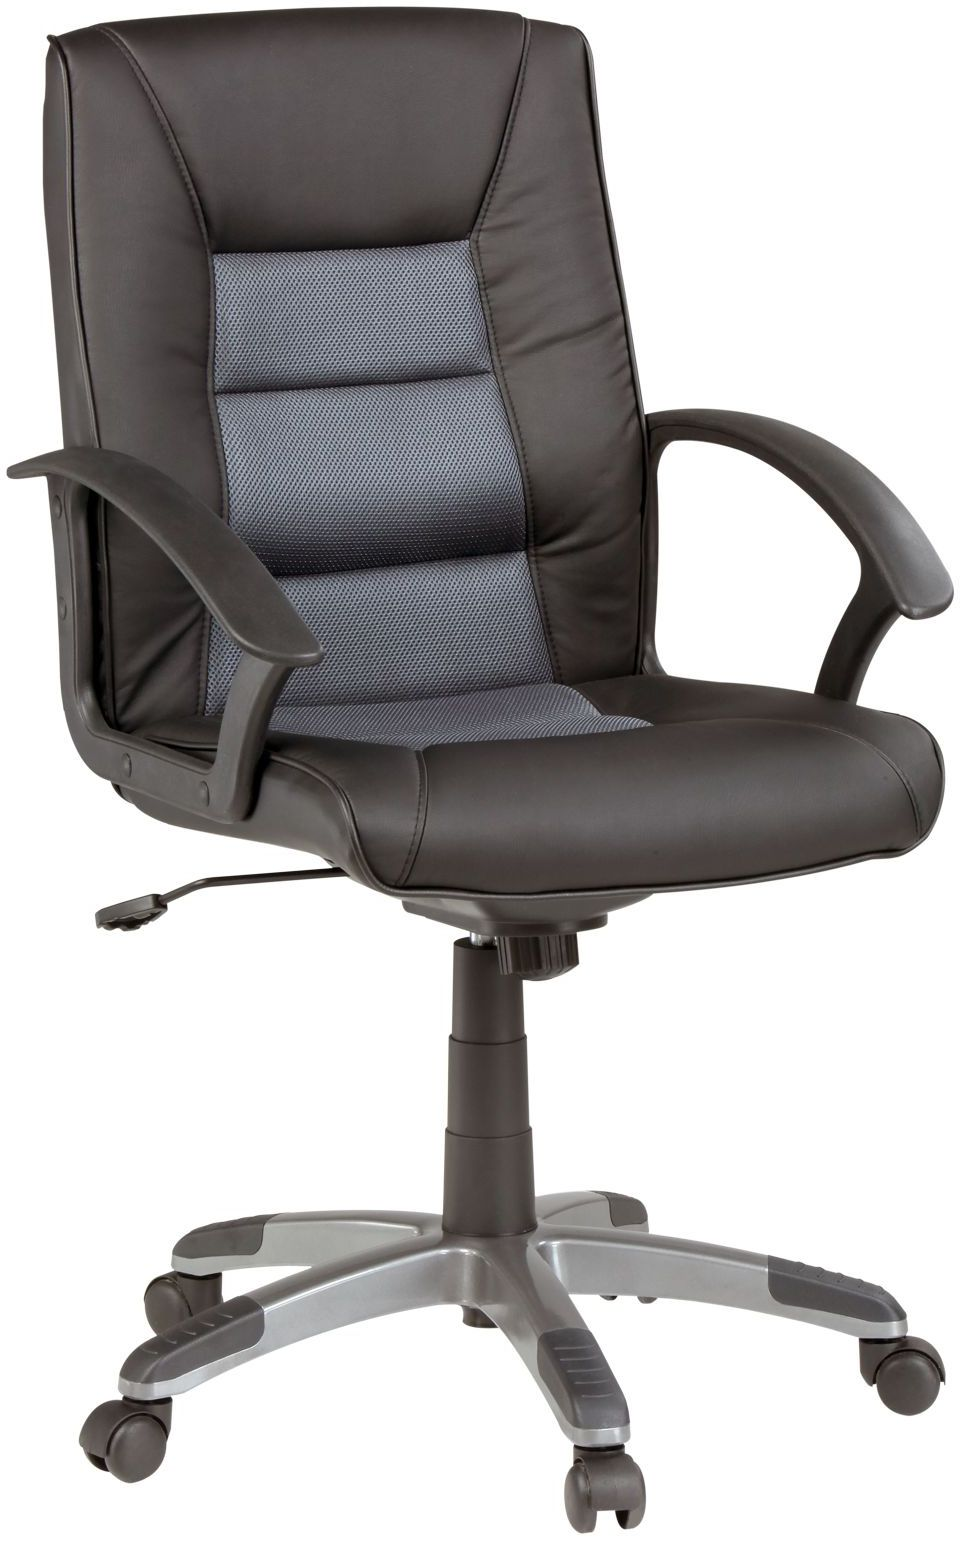 DUOCOLLECTION DUO Collection Chefsessel »Aichach«